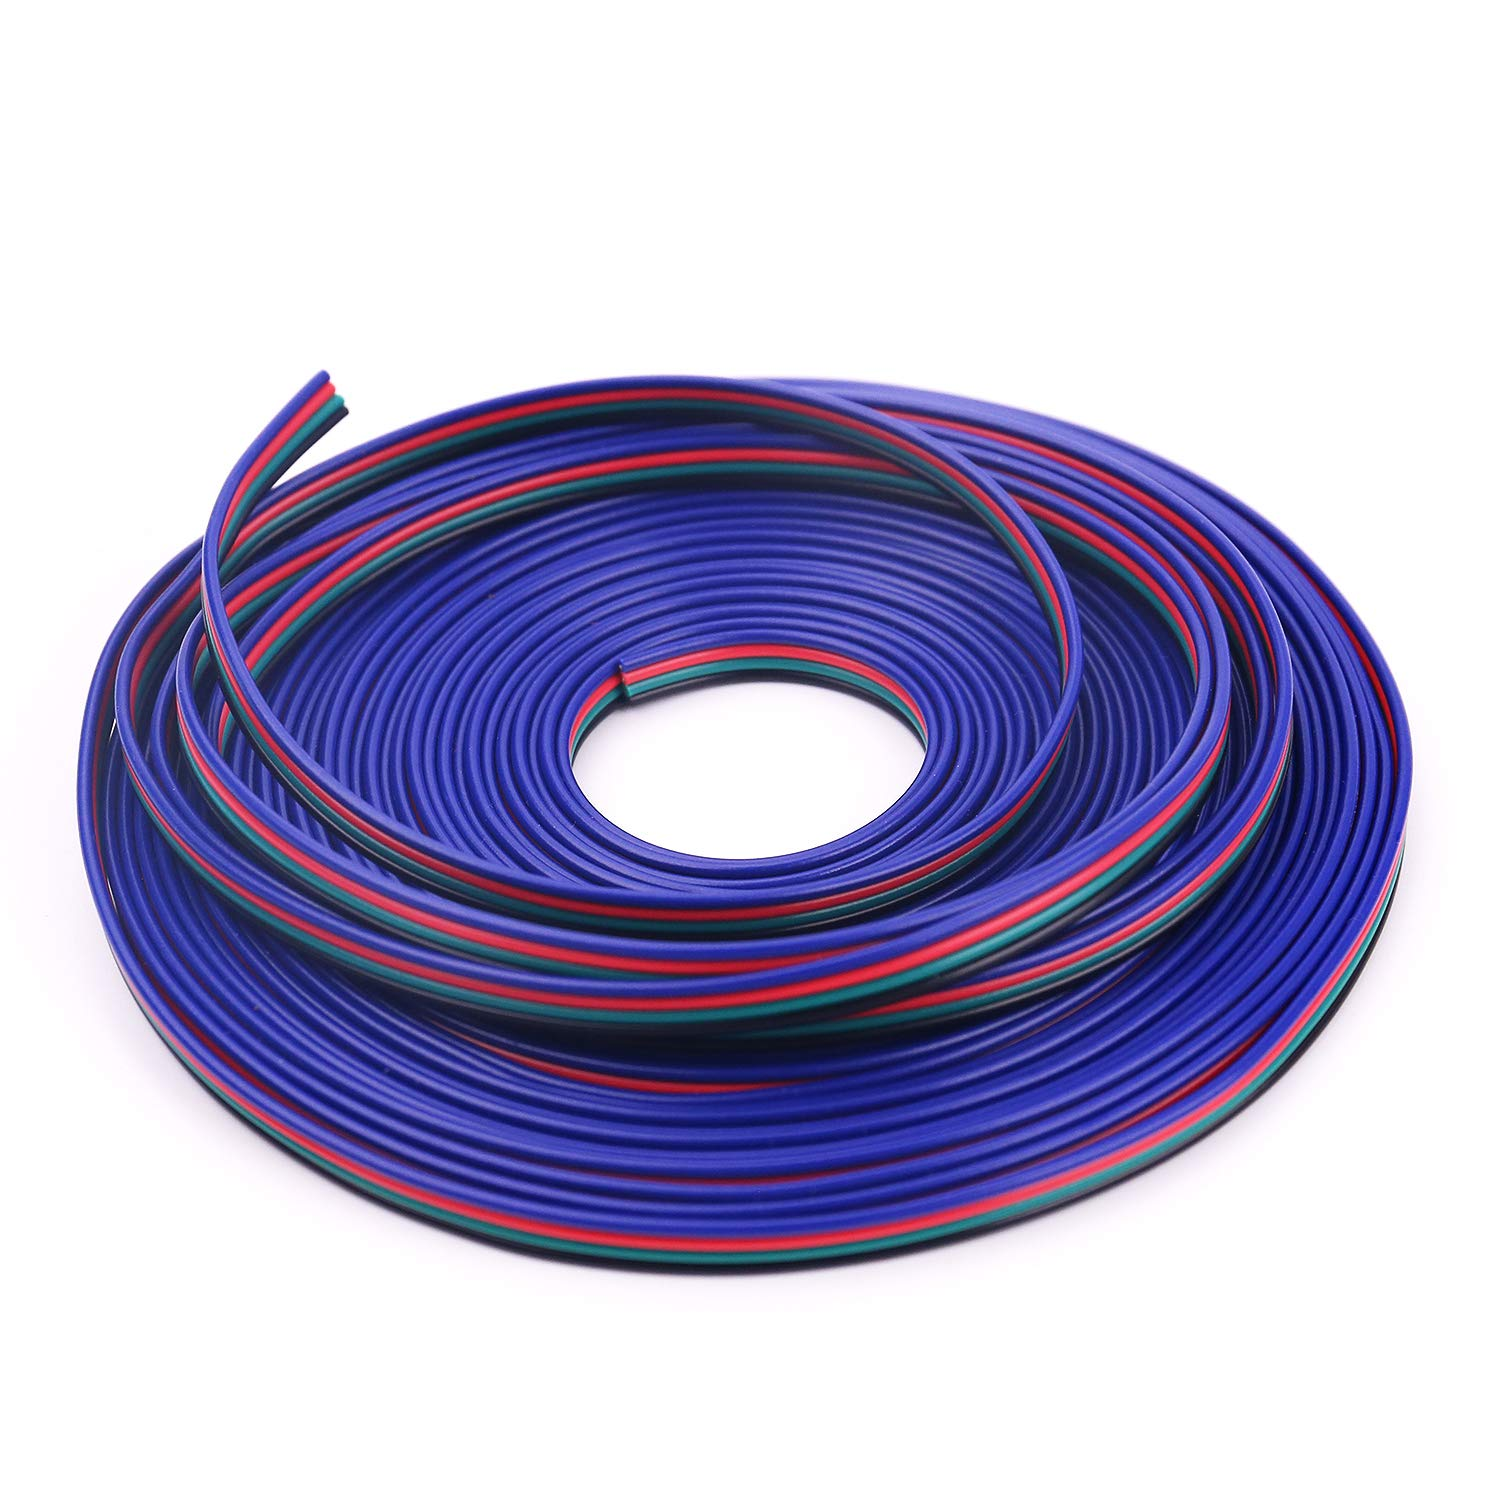 Icreating 100ft 4 Pin Rgb Extension Cable Wire Cord For 5050 3528 Led Wiring Color Changing Flexible